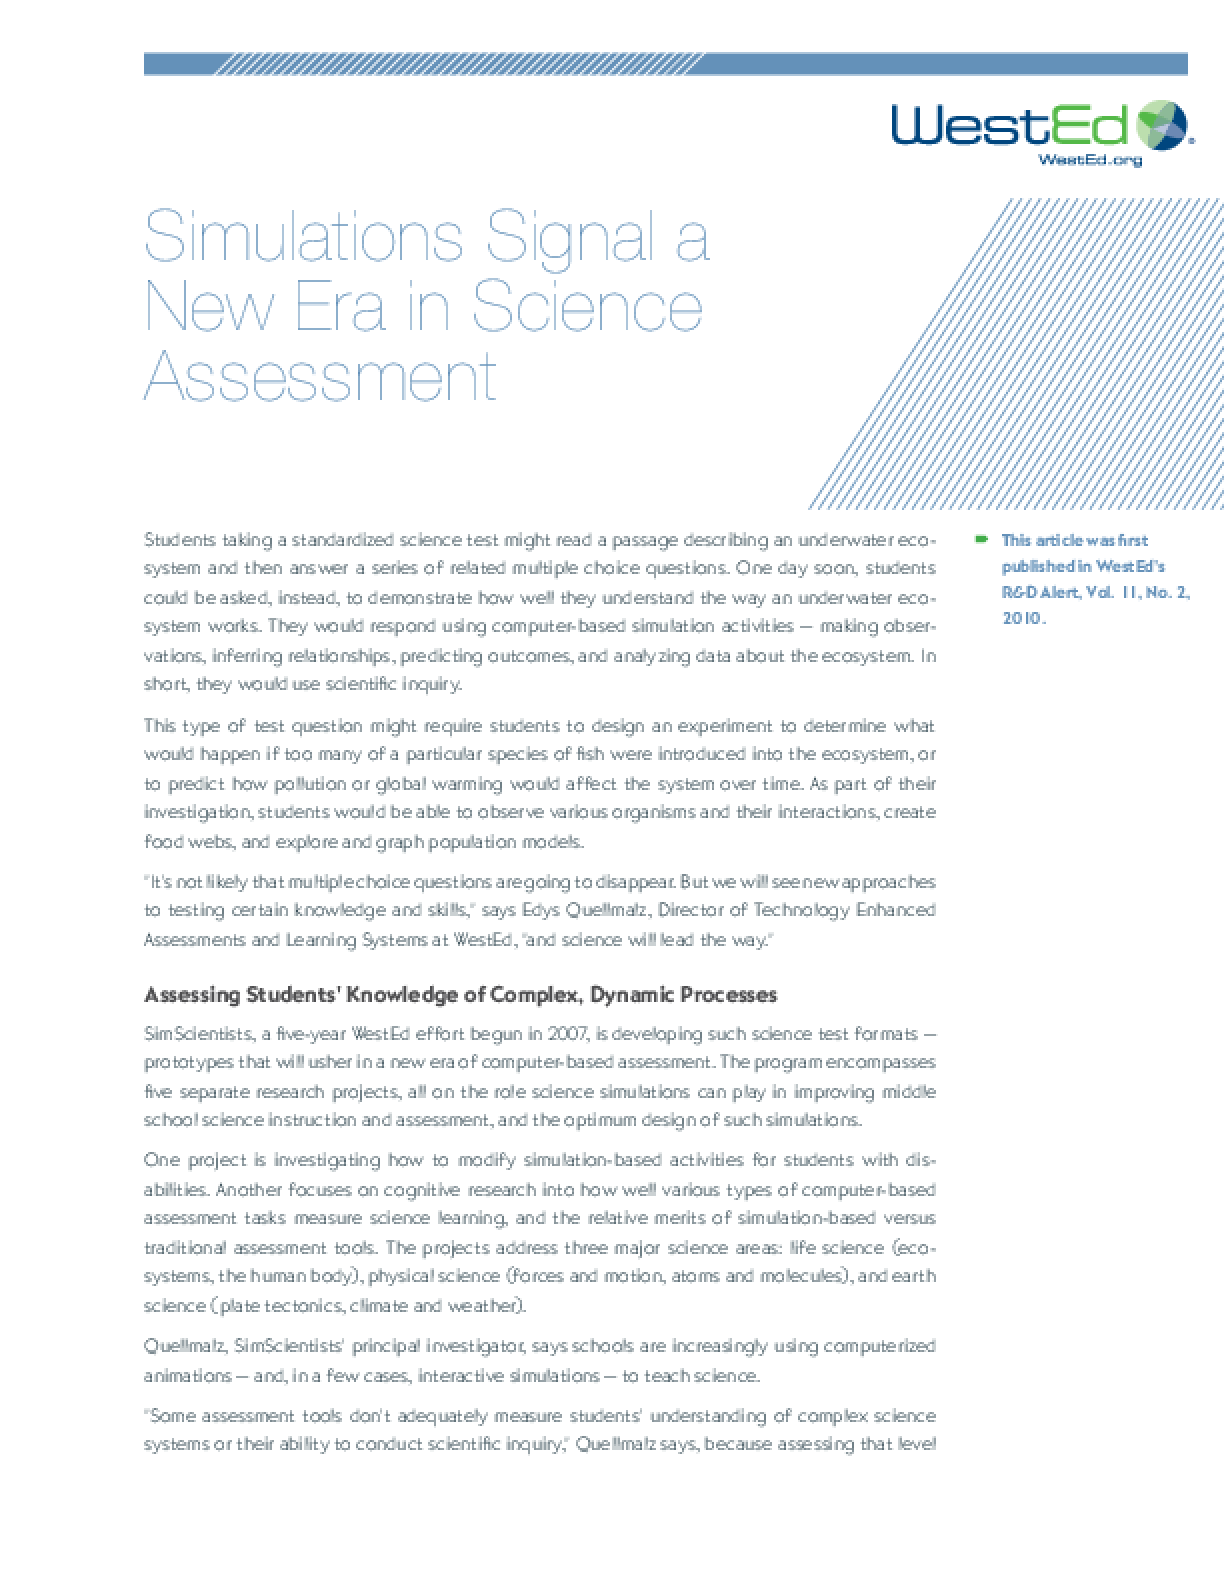 Simulations Signal a New Era in Science Assessment - IssueLab